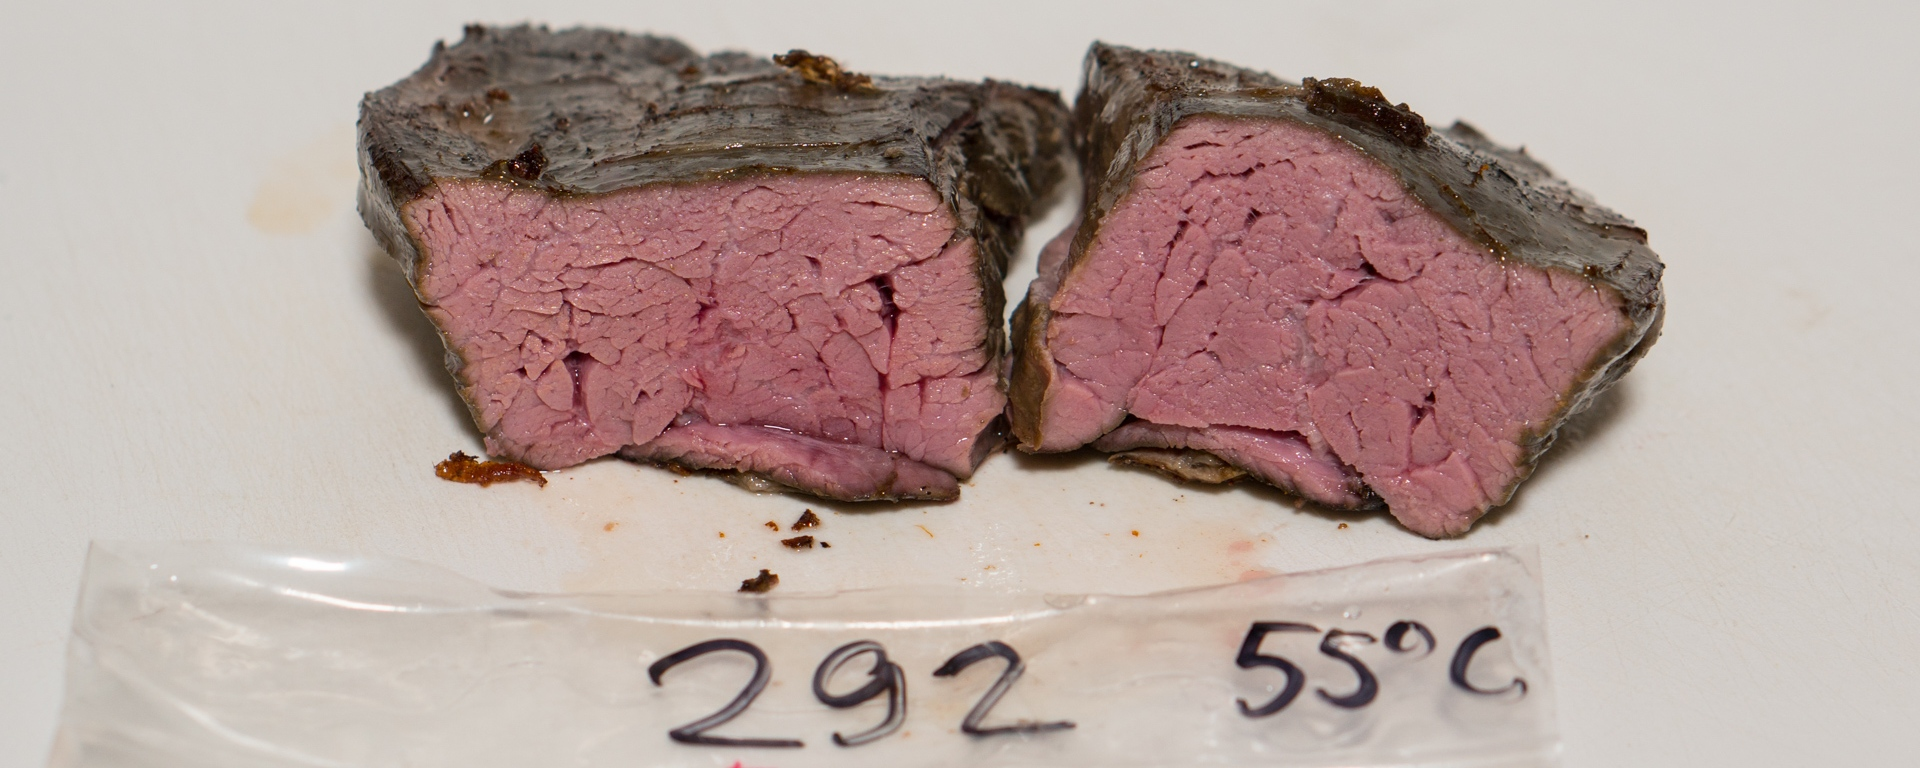 flank steak sous vide temperature experiment stefan 39 s gourmet blog. Black Bedroom Furniture Sets. Home Design Ideas